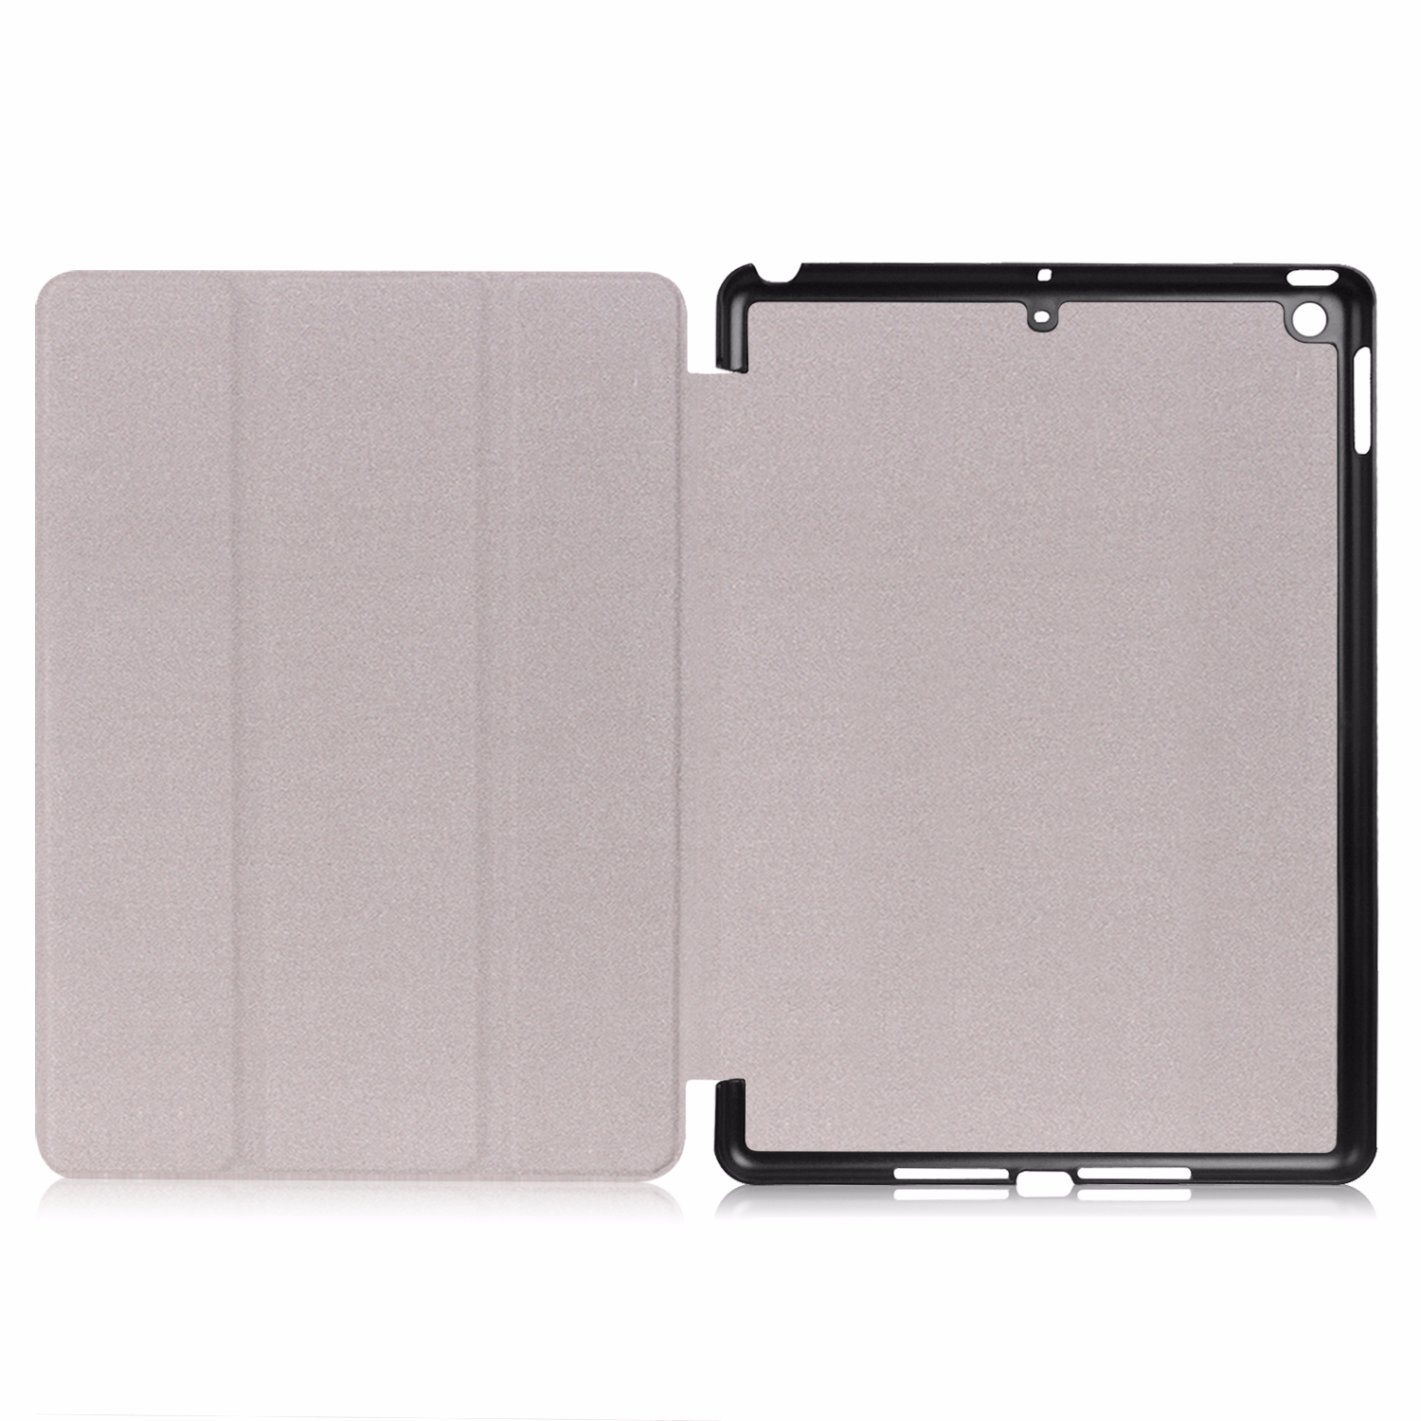 for iPad 9.7 2017 Case, Smart Flip Cover for New iPad 9.7, Leather Case for iPad 2017